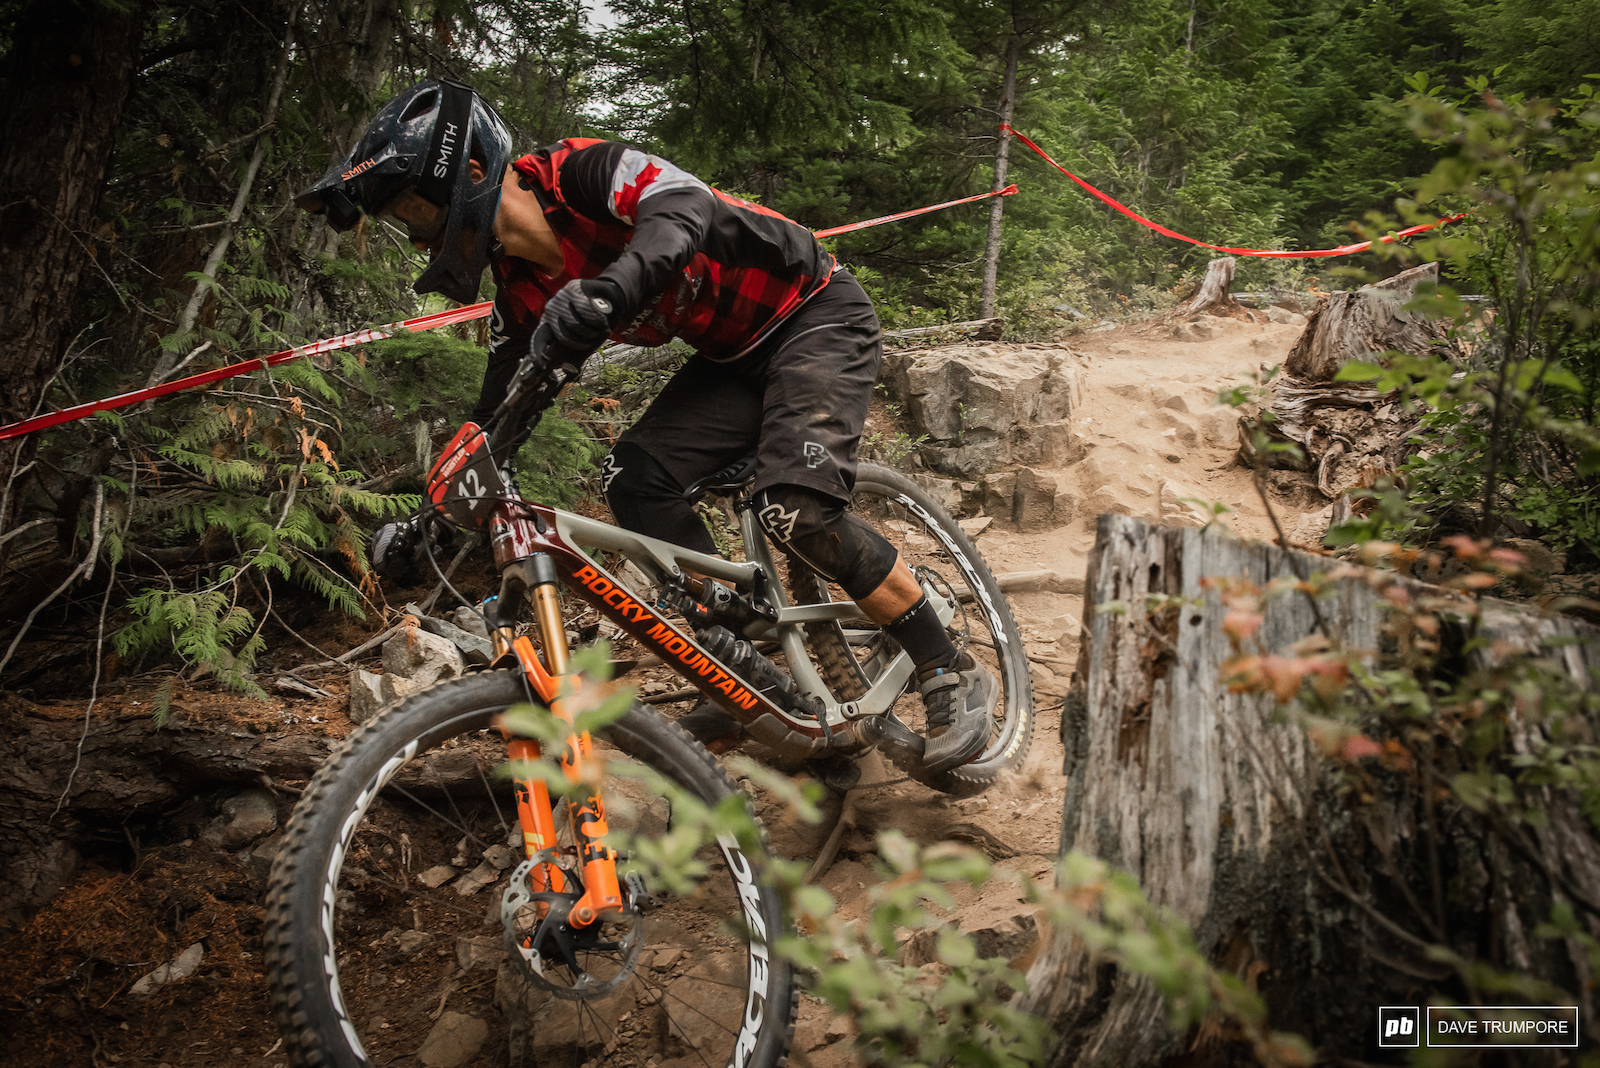 Newly crowned Canadian Enduro Champ Remi Gauvin on Stage 3